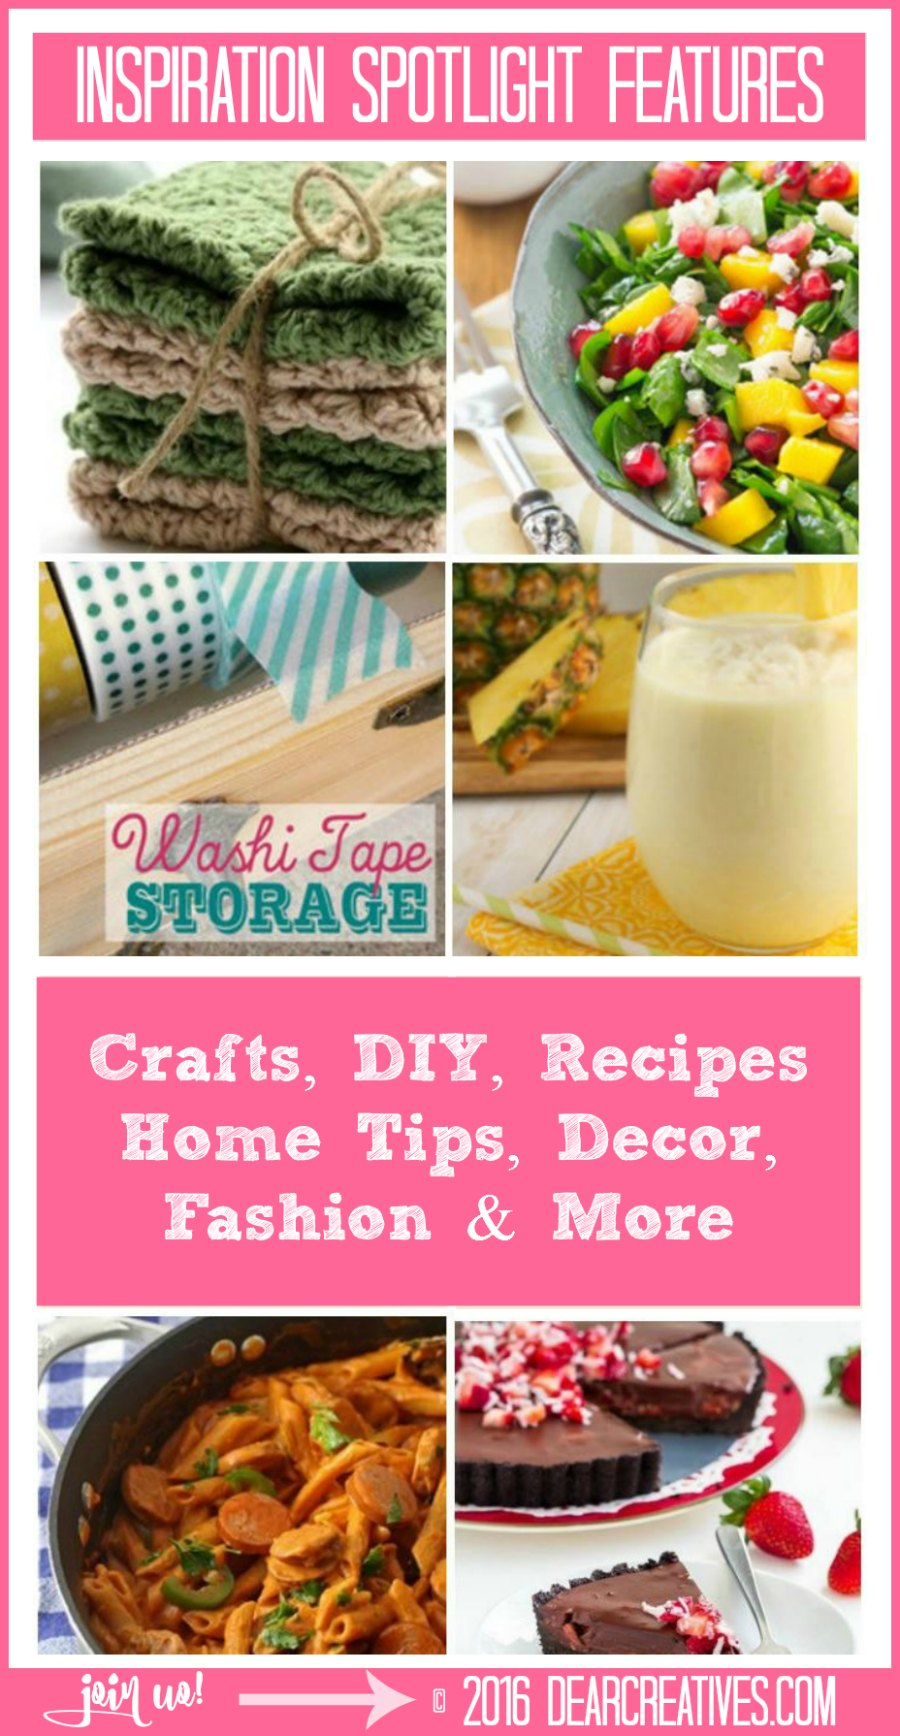 Linkup Party | Inspiration Spotlgiht 178 Features- DearCreatives.com